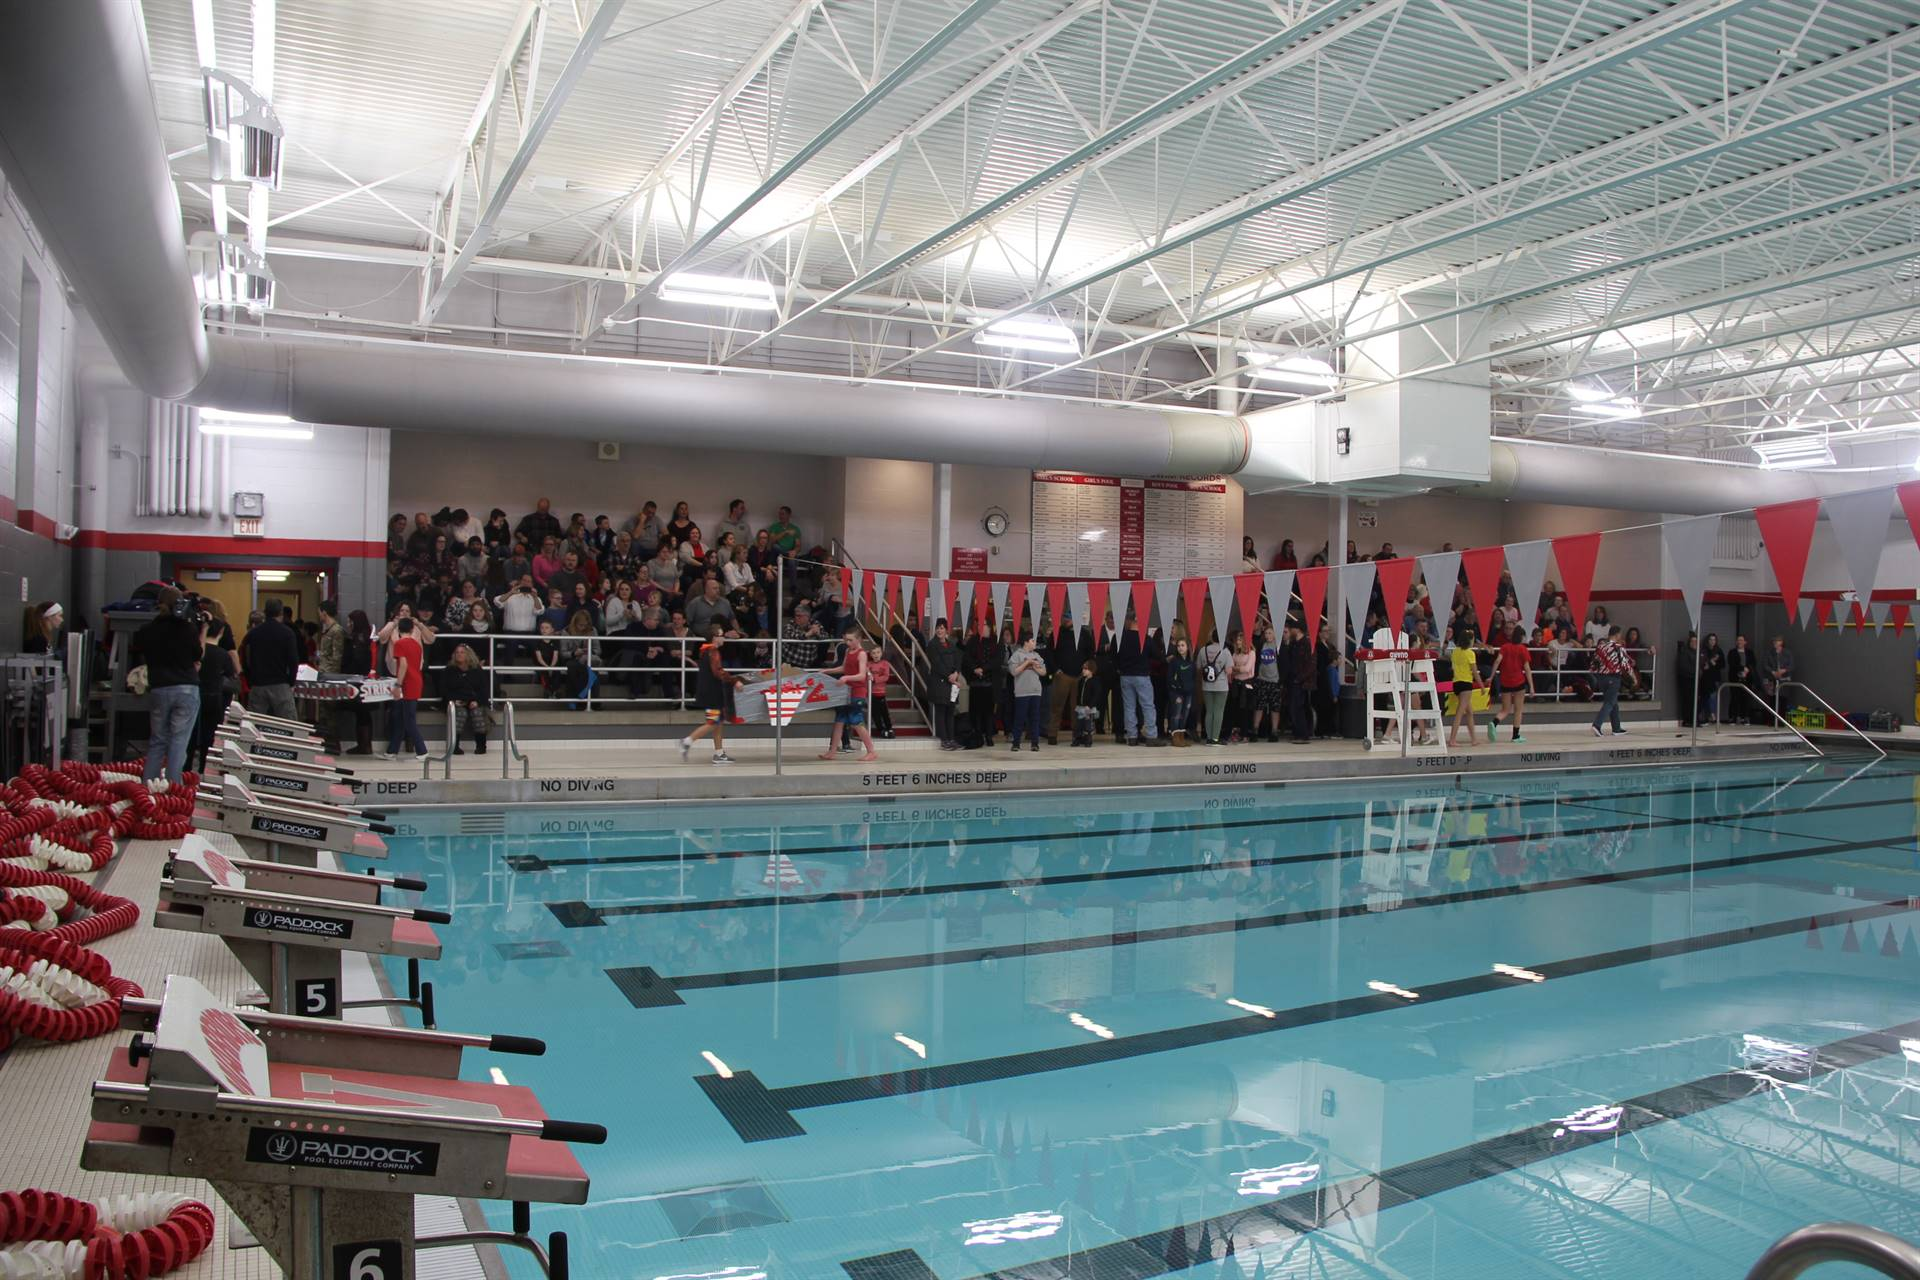 students of students entering pool area for cardboard boat races